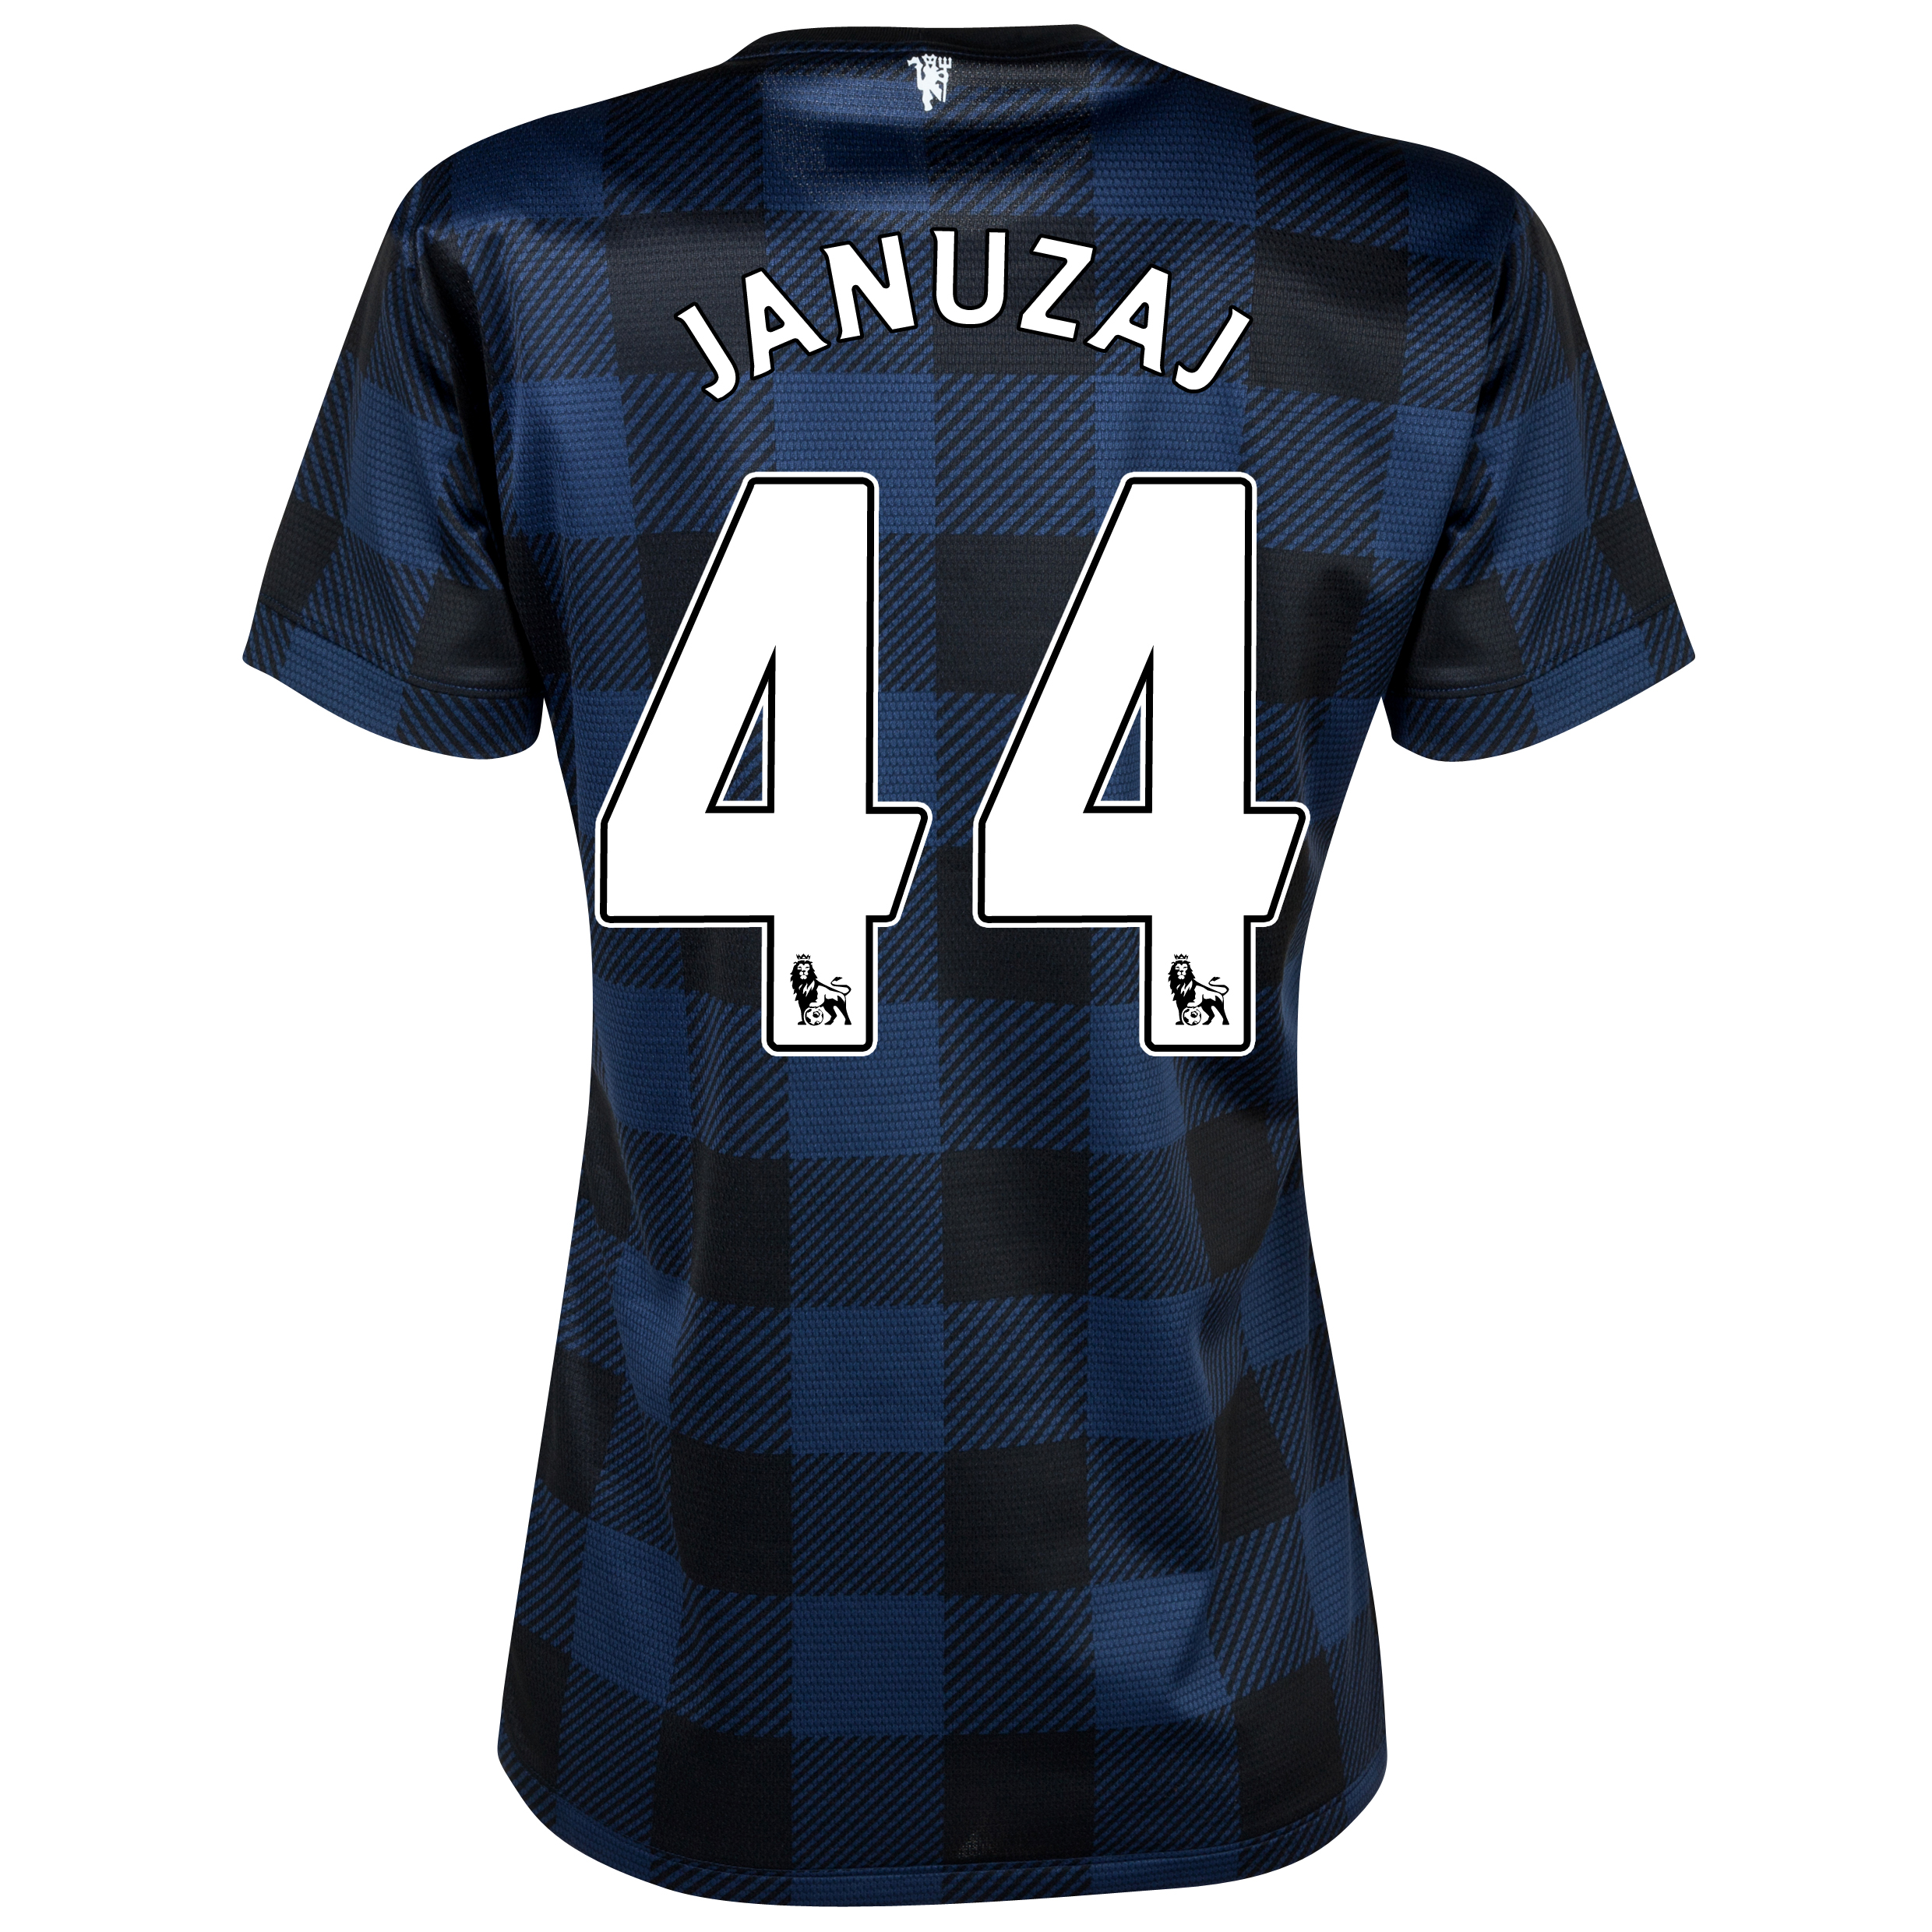 Manchester United Away Shirt 2013/14 - Womens with Januzaj 44 printing